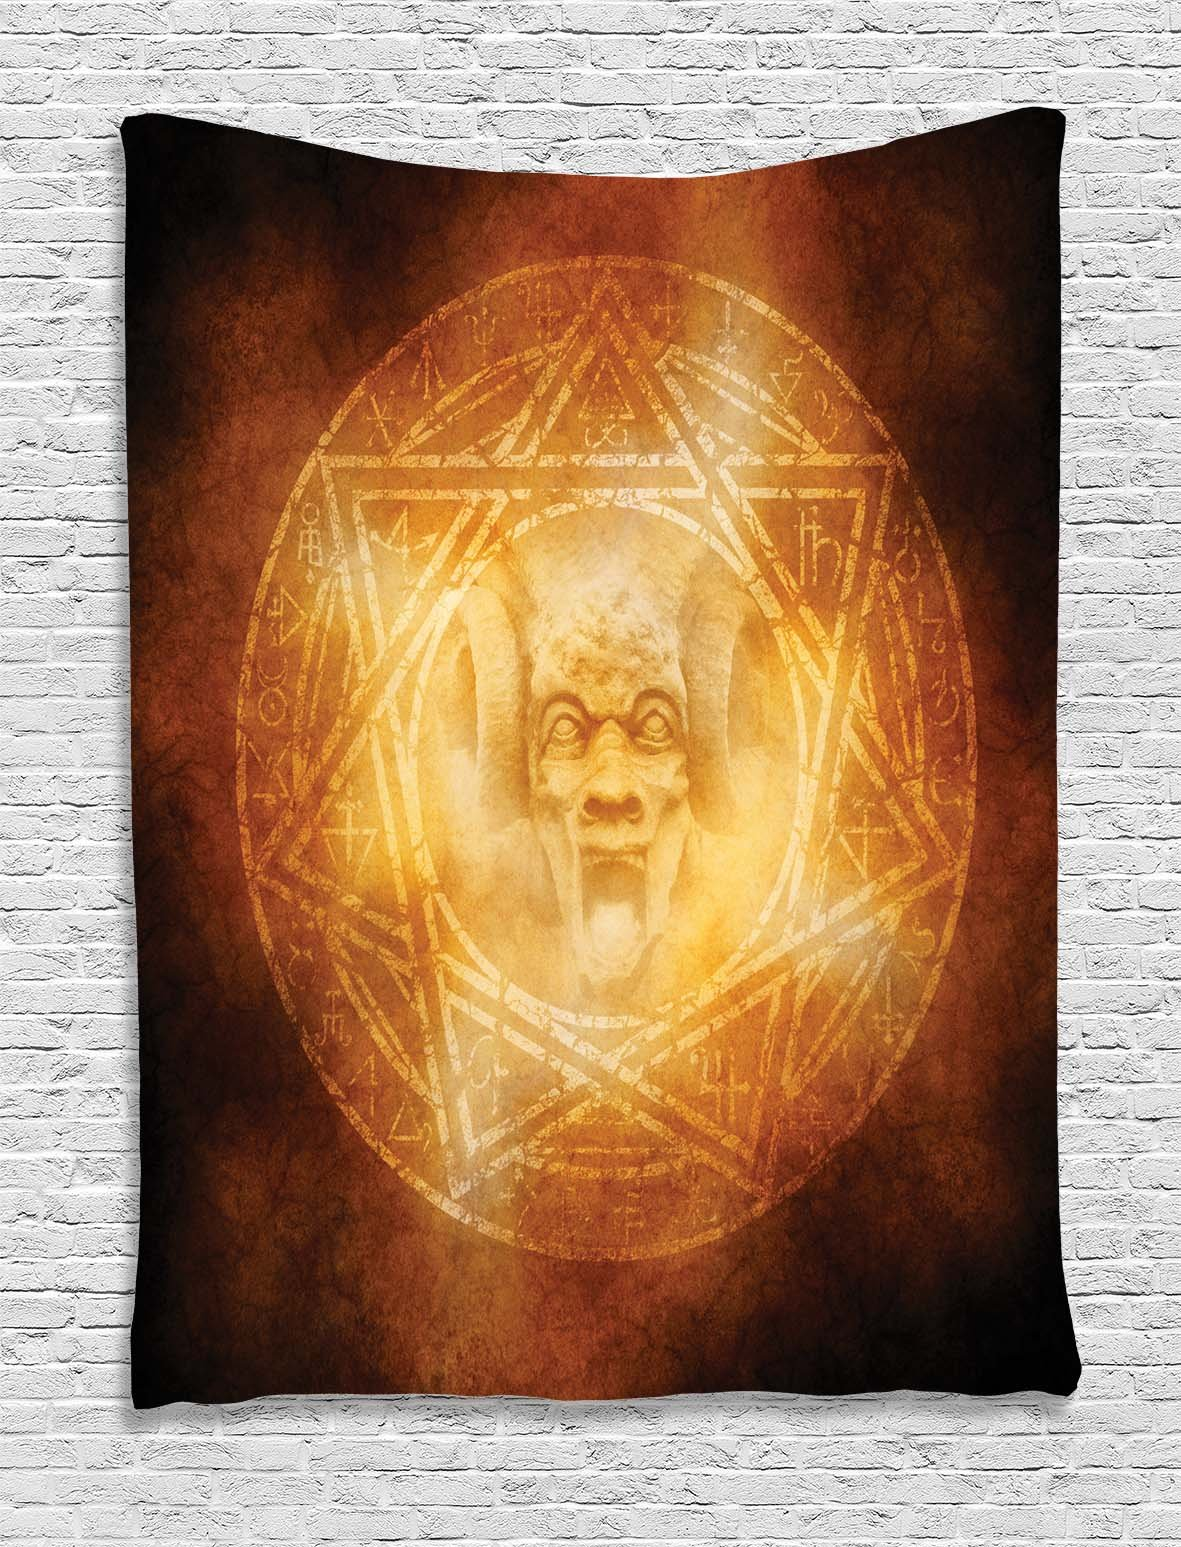 Ambesonne Horror House Decor Tapestry, Demon Trap Symbol Logo Ceremony Creepy Ritual Fantasy Paranormal Design, Wall Hanging for Bedroom Living Room Dorm, 40 W x 60 L Inches, Orange